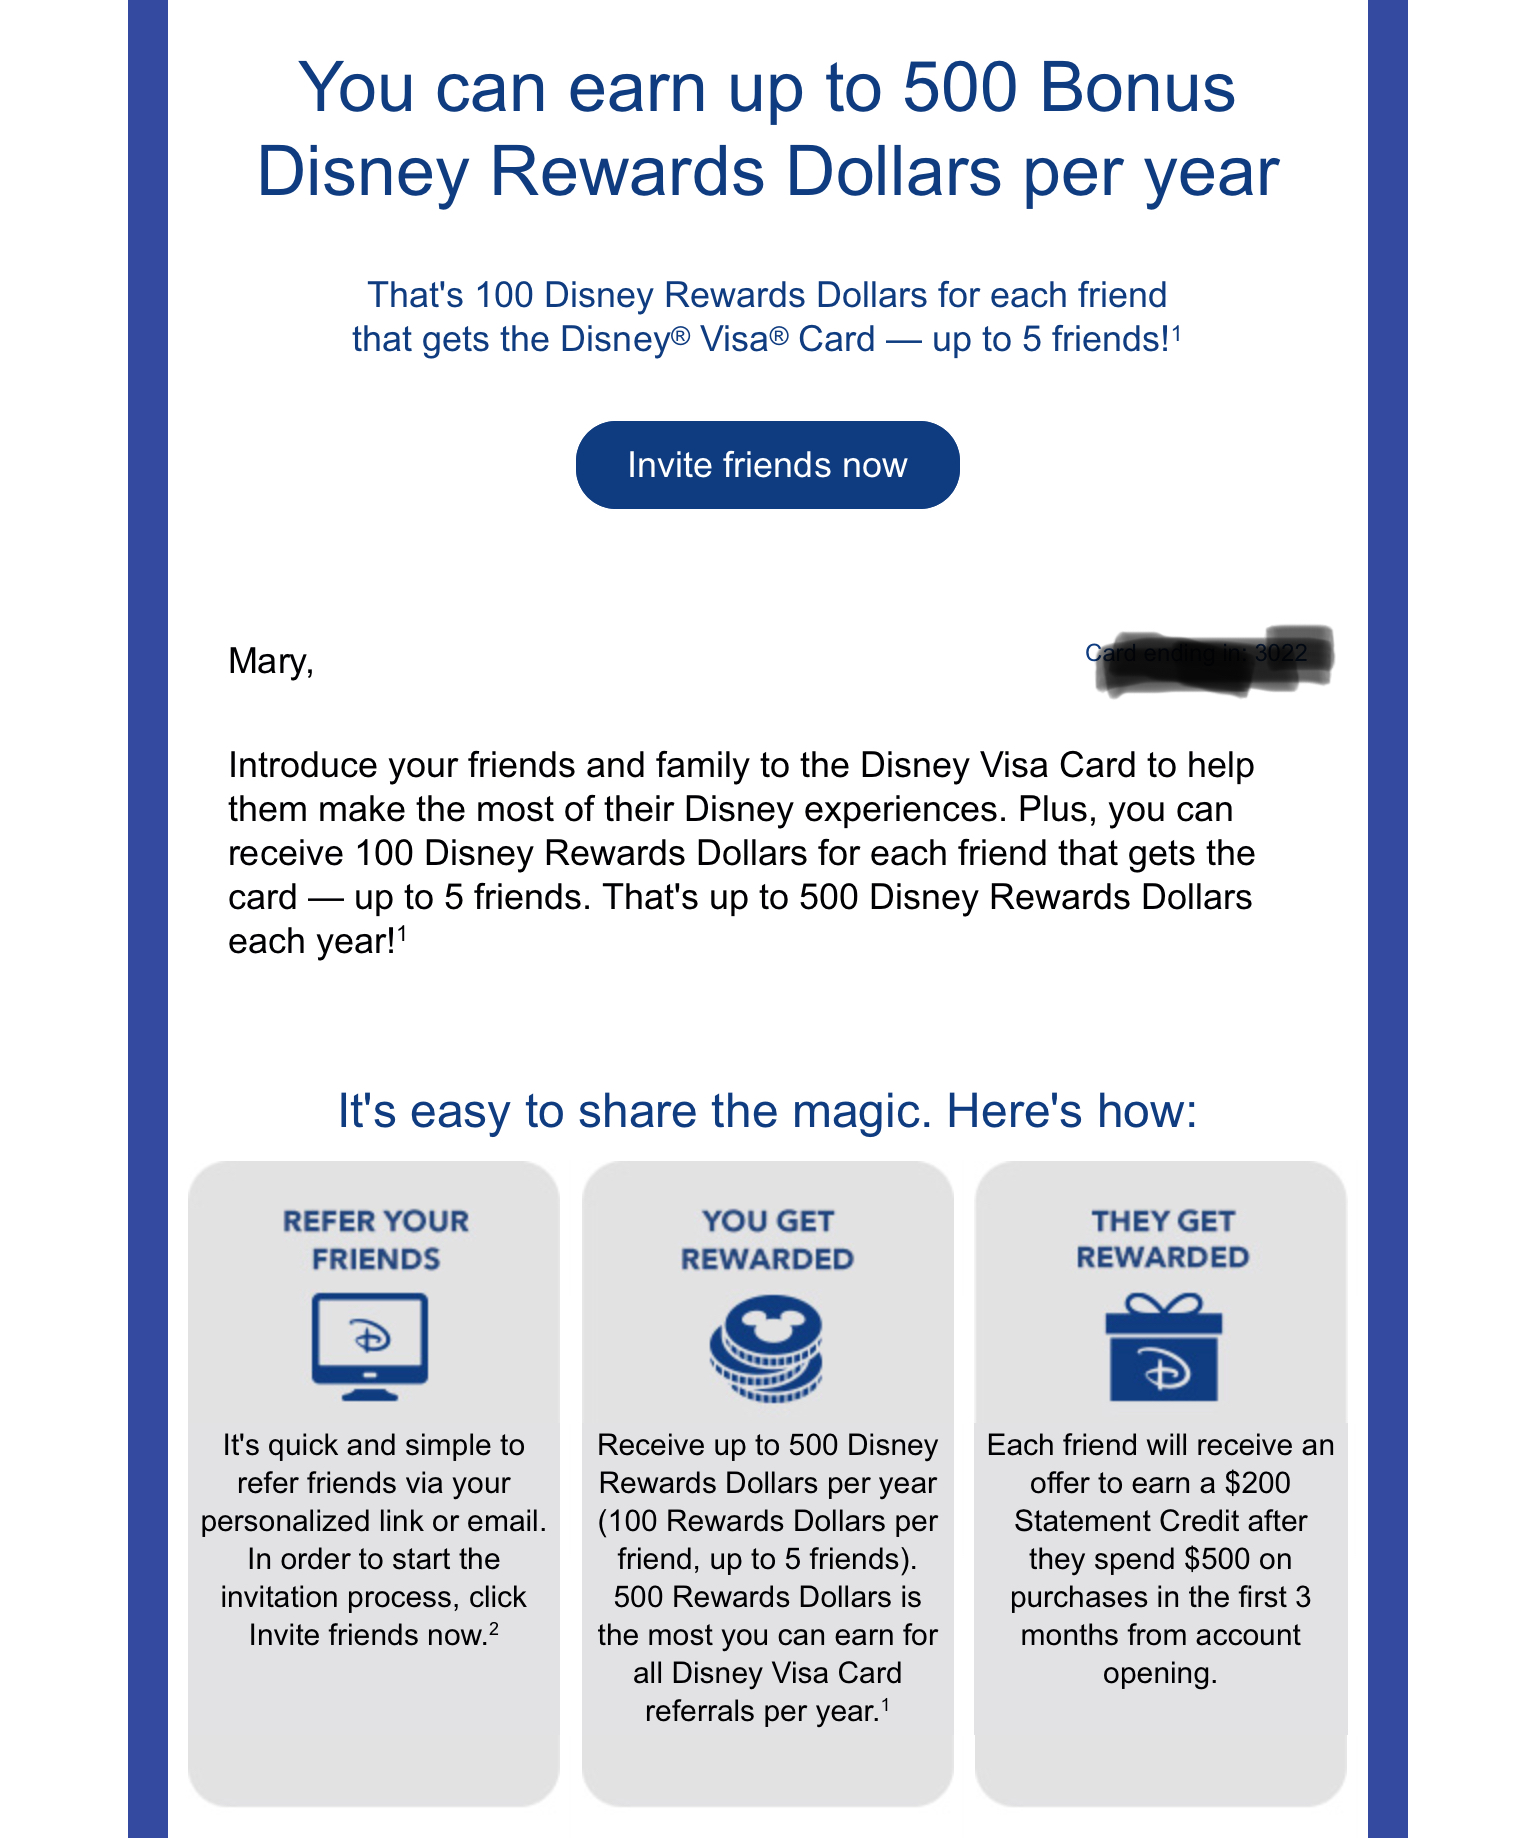 $200 Statement Credit For New Disney Chase Cardholders